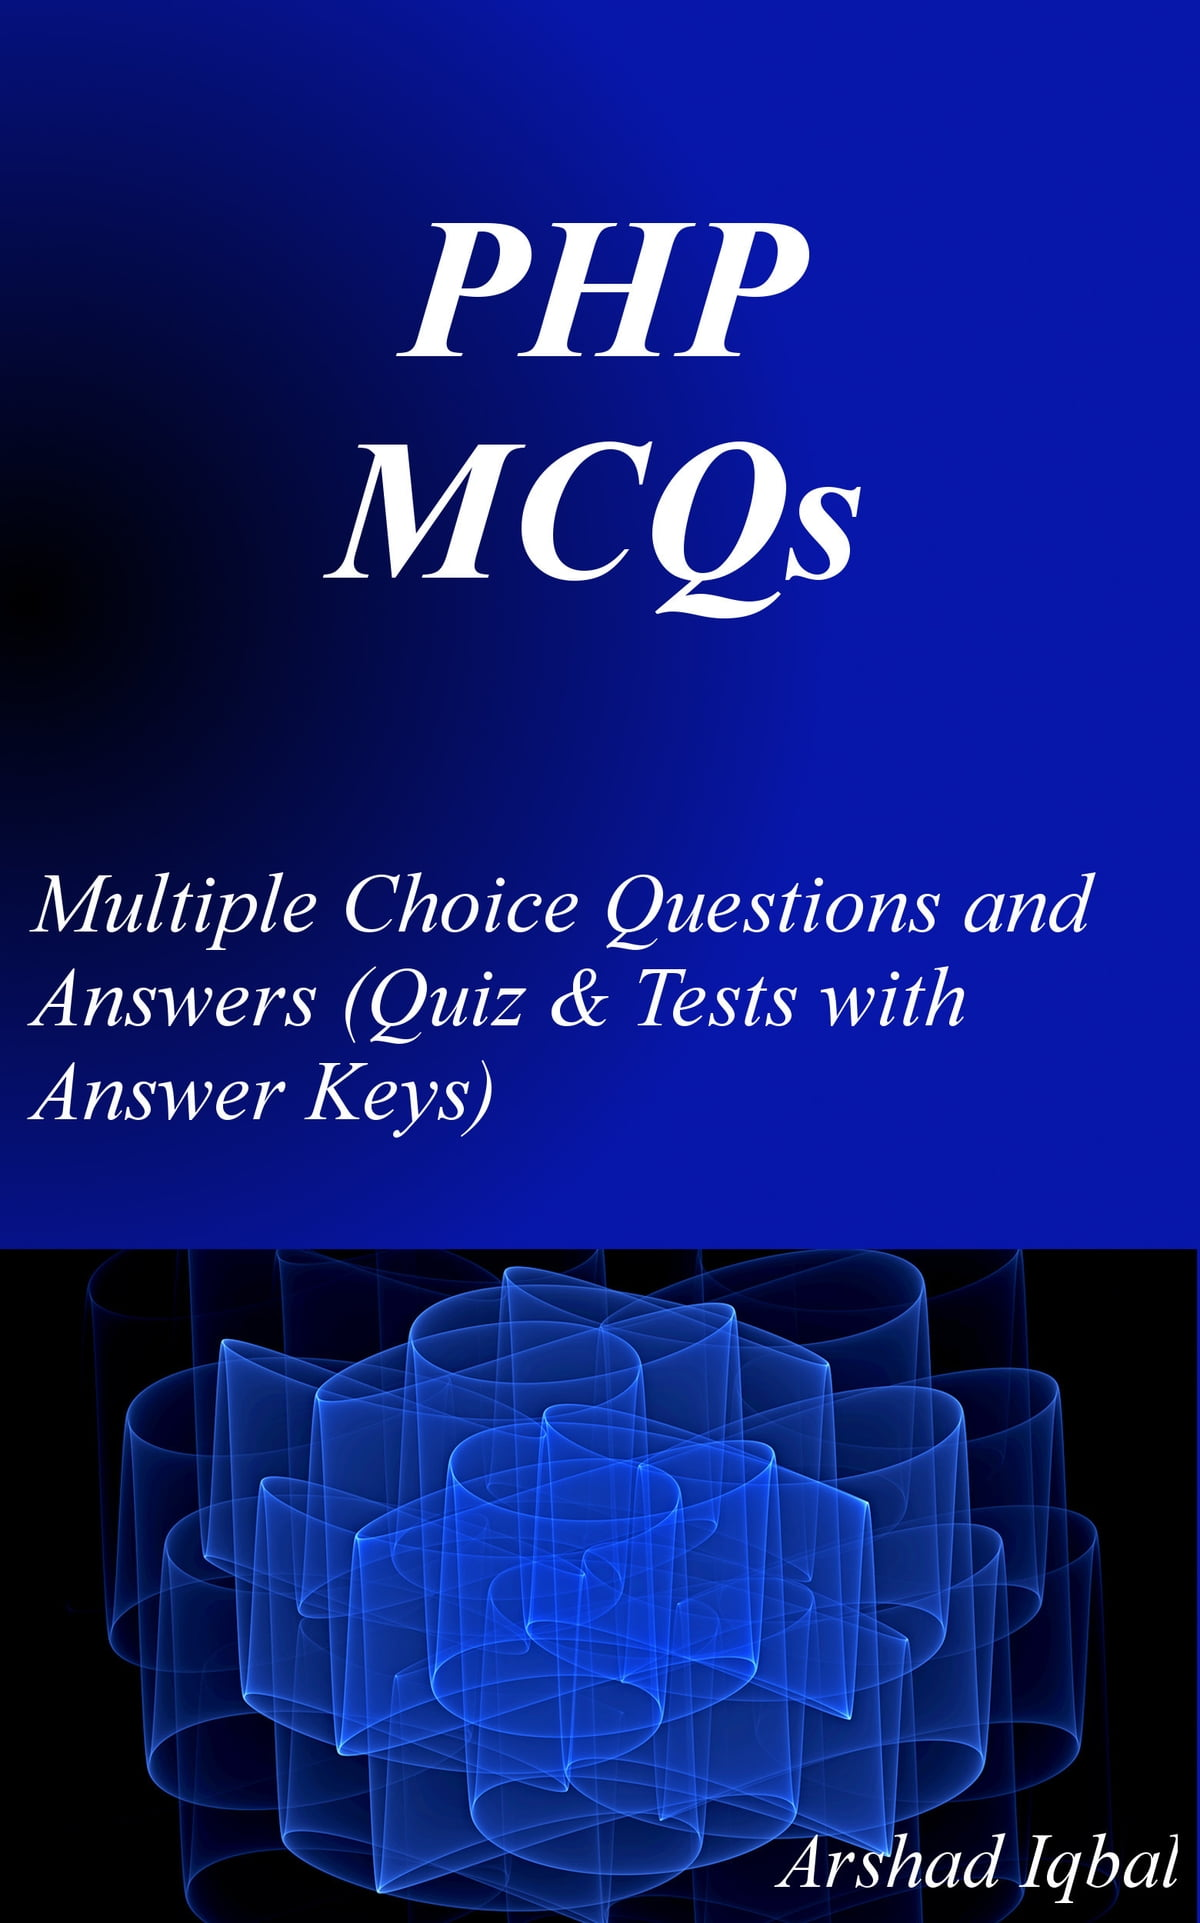 PHP MCQs: Multiple Choice Questions and Answers (Quiz & Tests with Answer  Keys) ebook by Arshad Iqbal - Rakuten Kobo